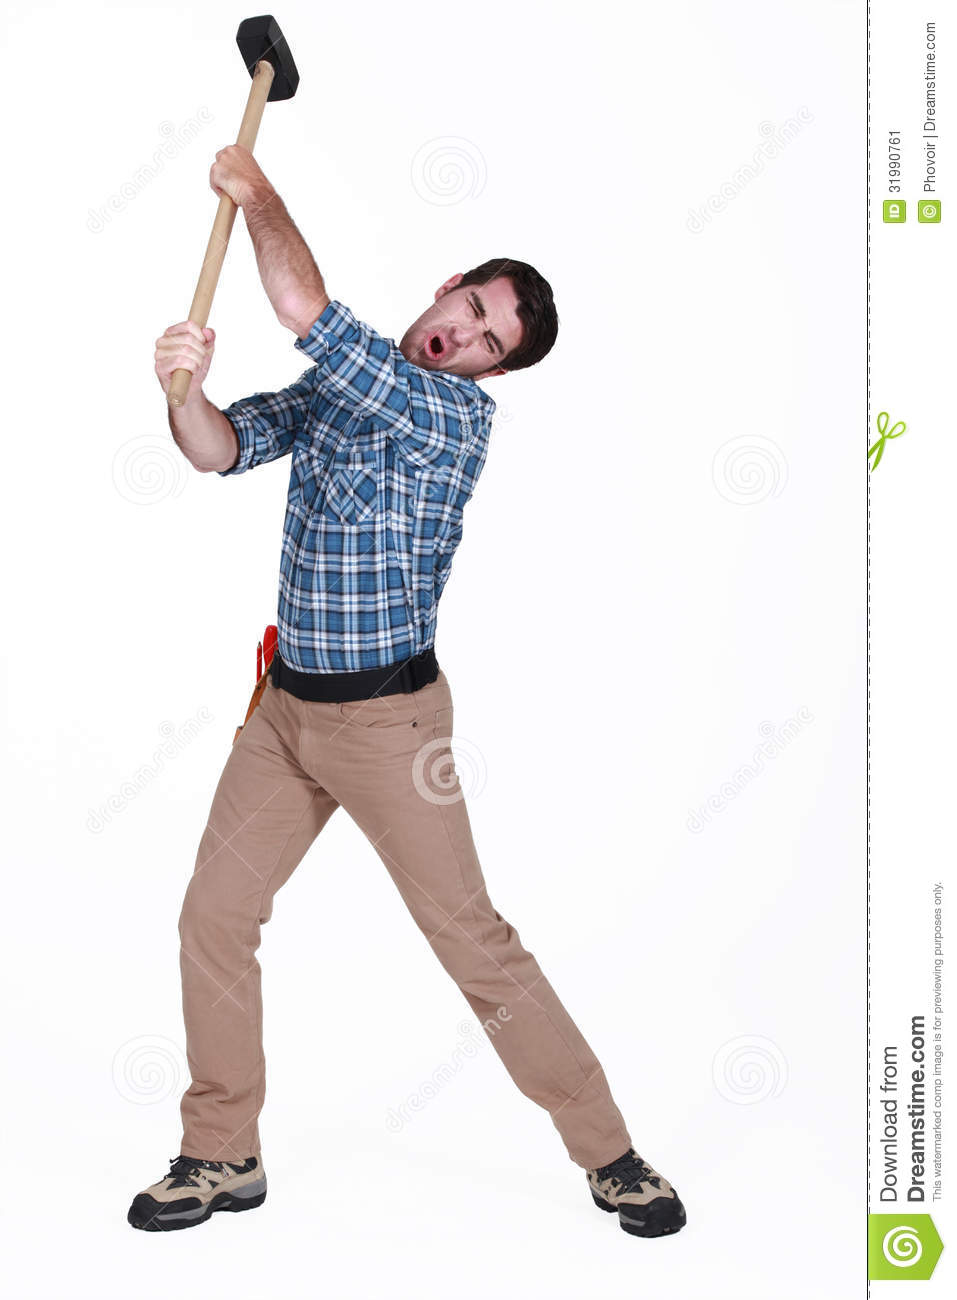 Man Using Sledge-hammer Stock Image - Image: 31990761